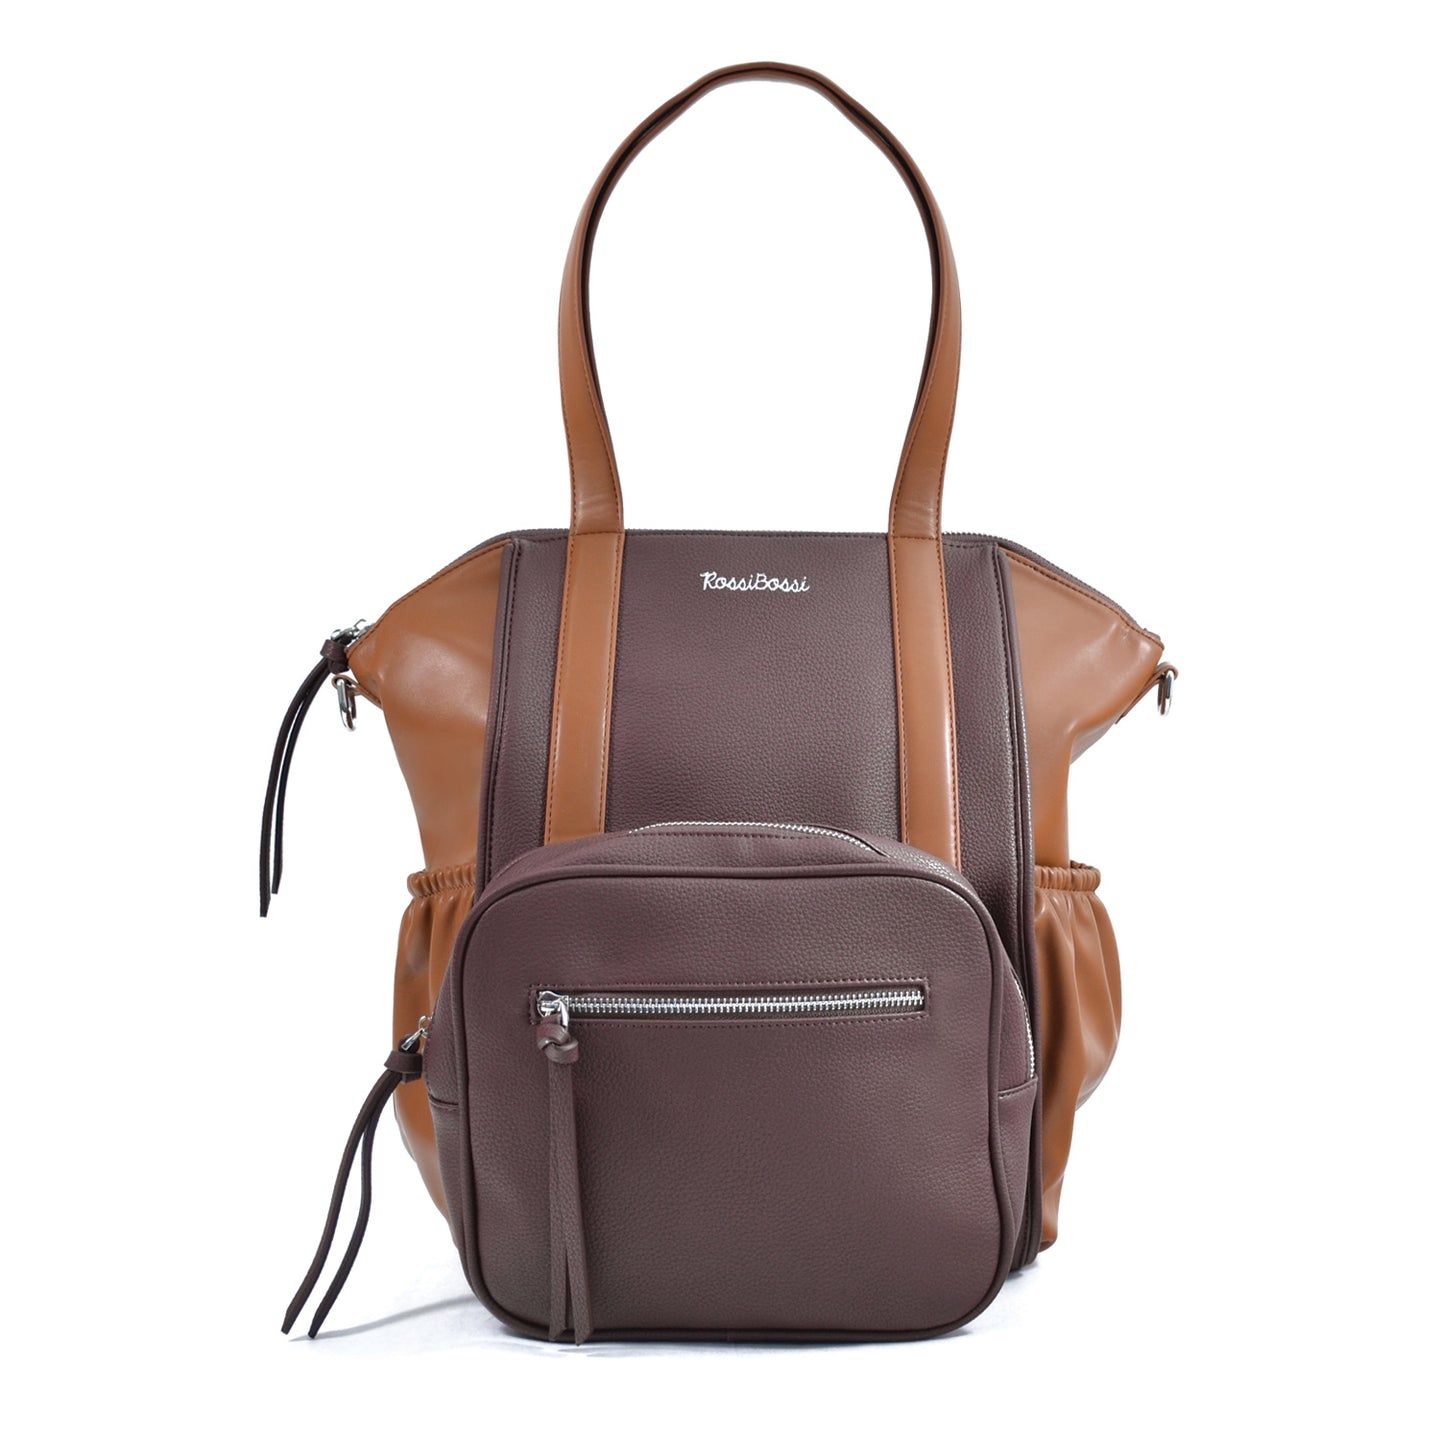 OLIVIA Diaper Bag (Chocolate)